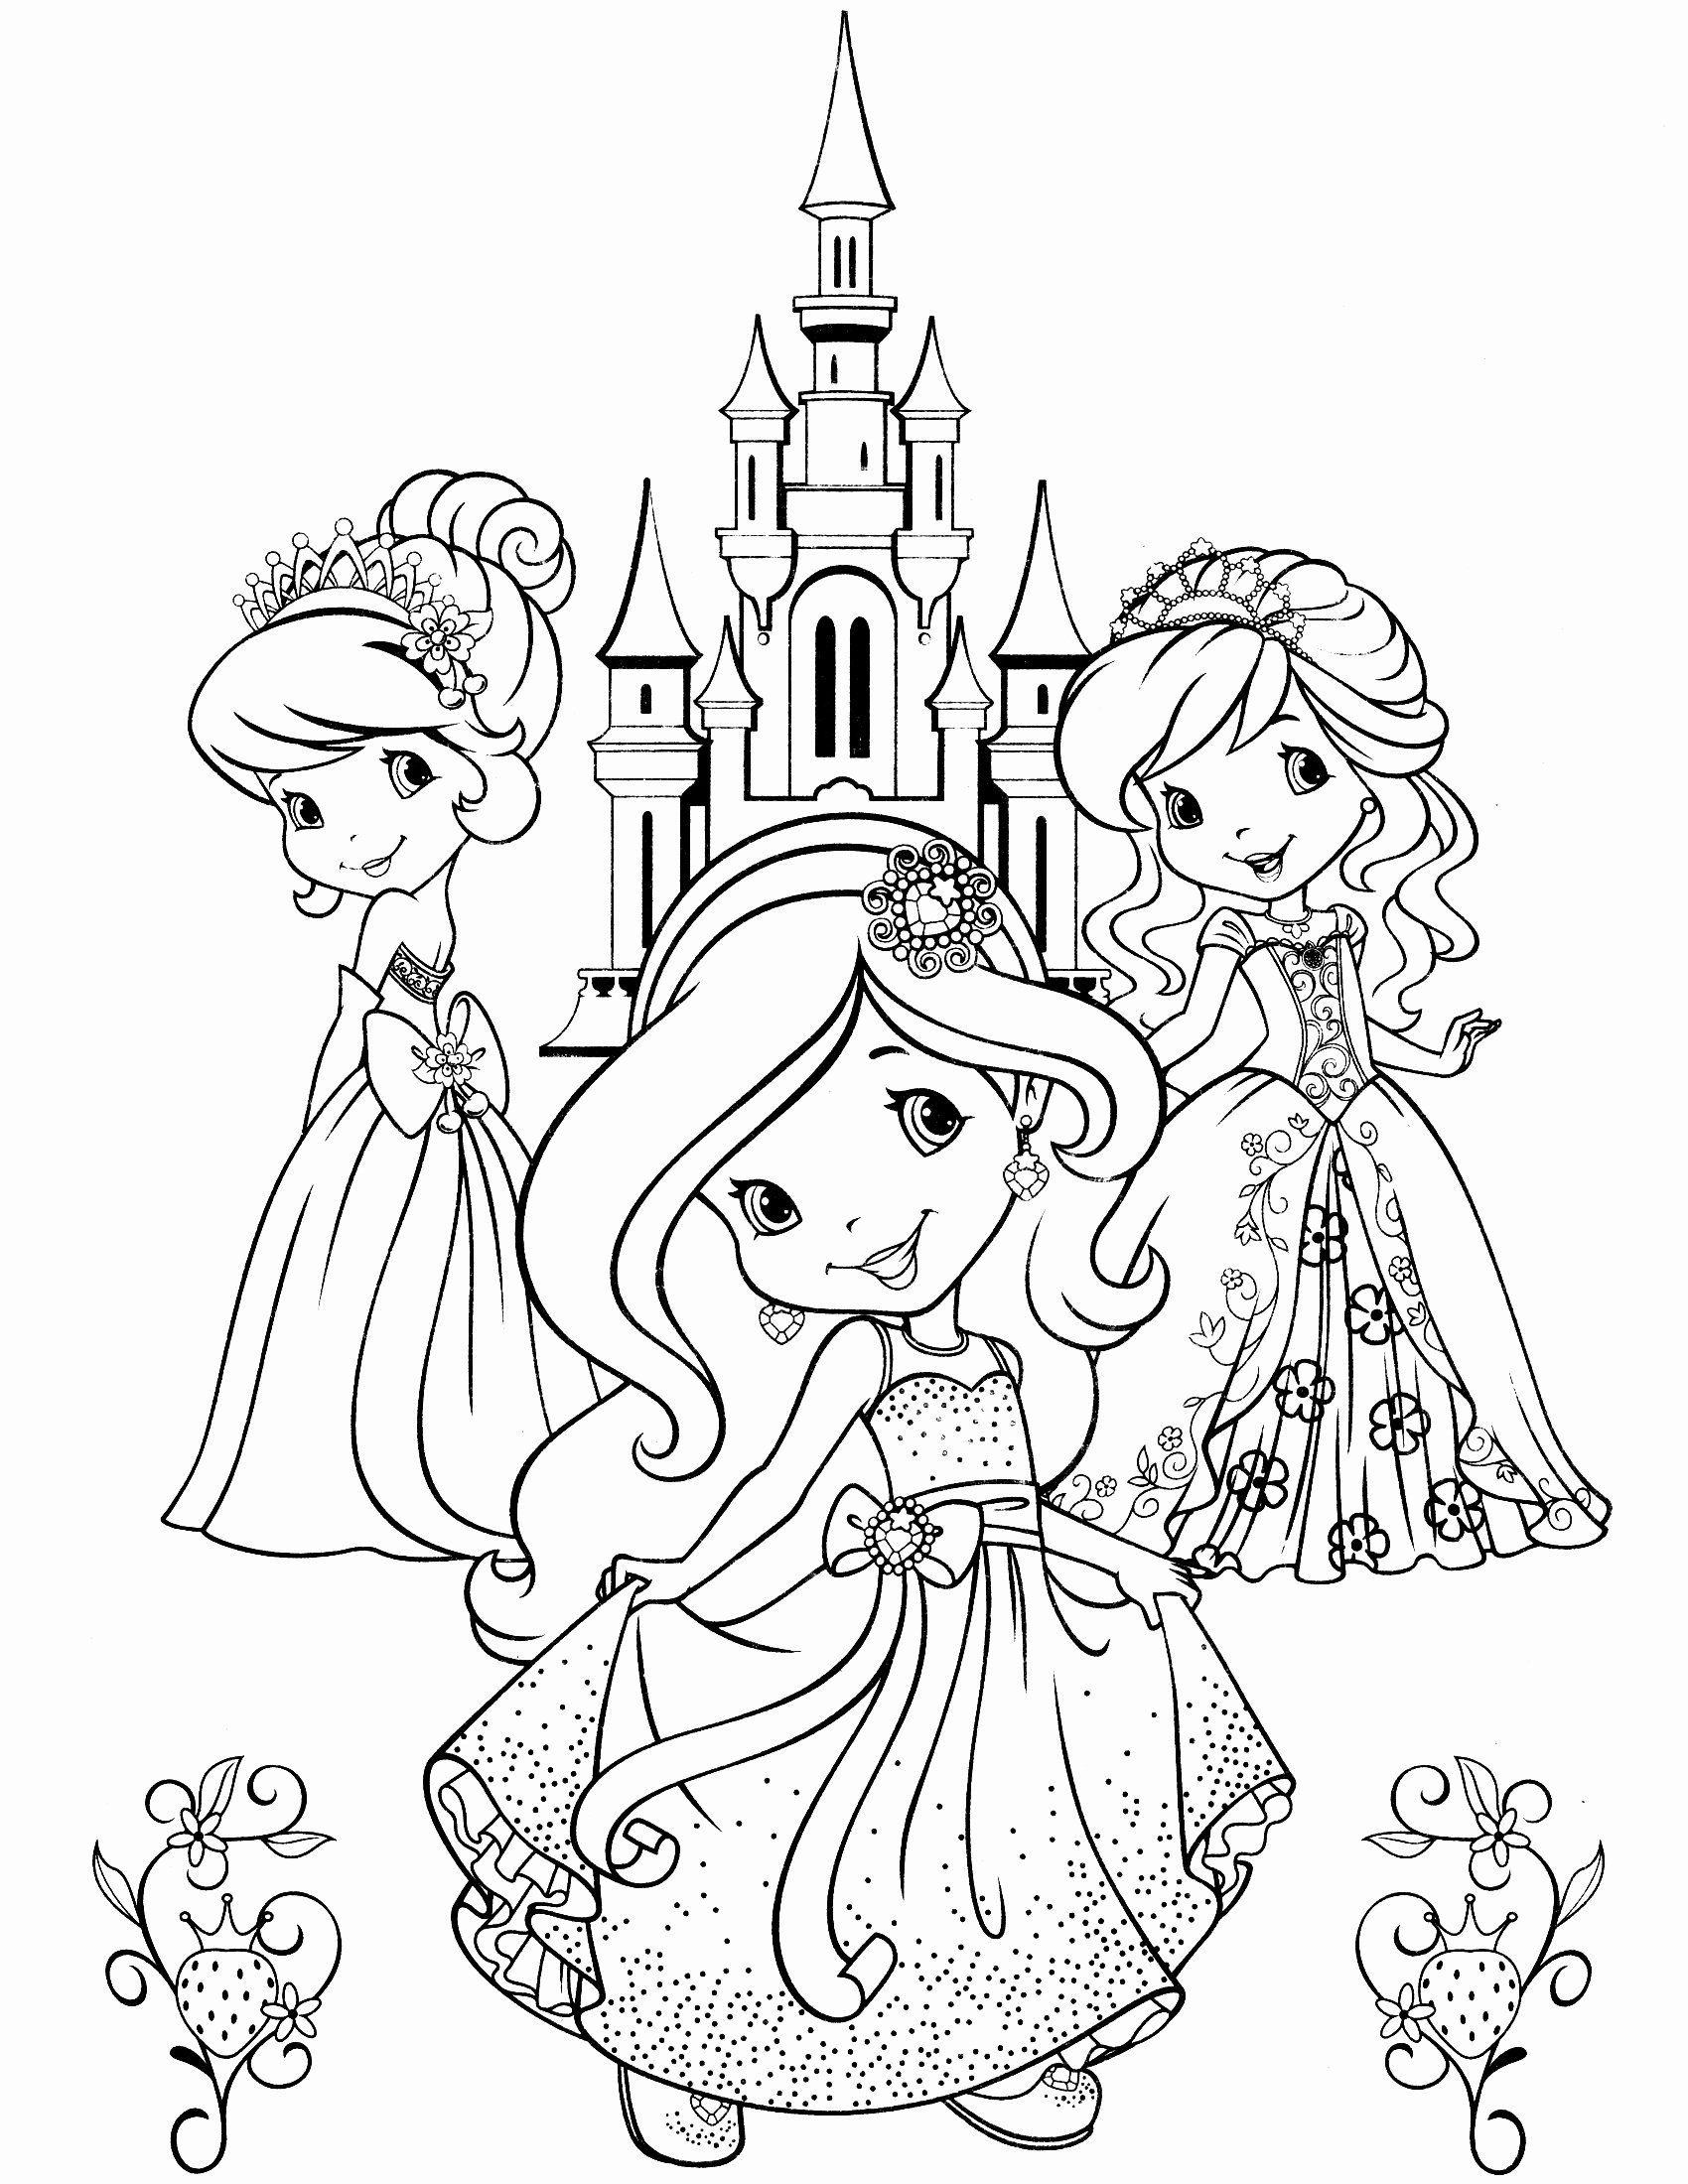 24 Strawberry Shortcake Coloring Page In